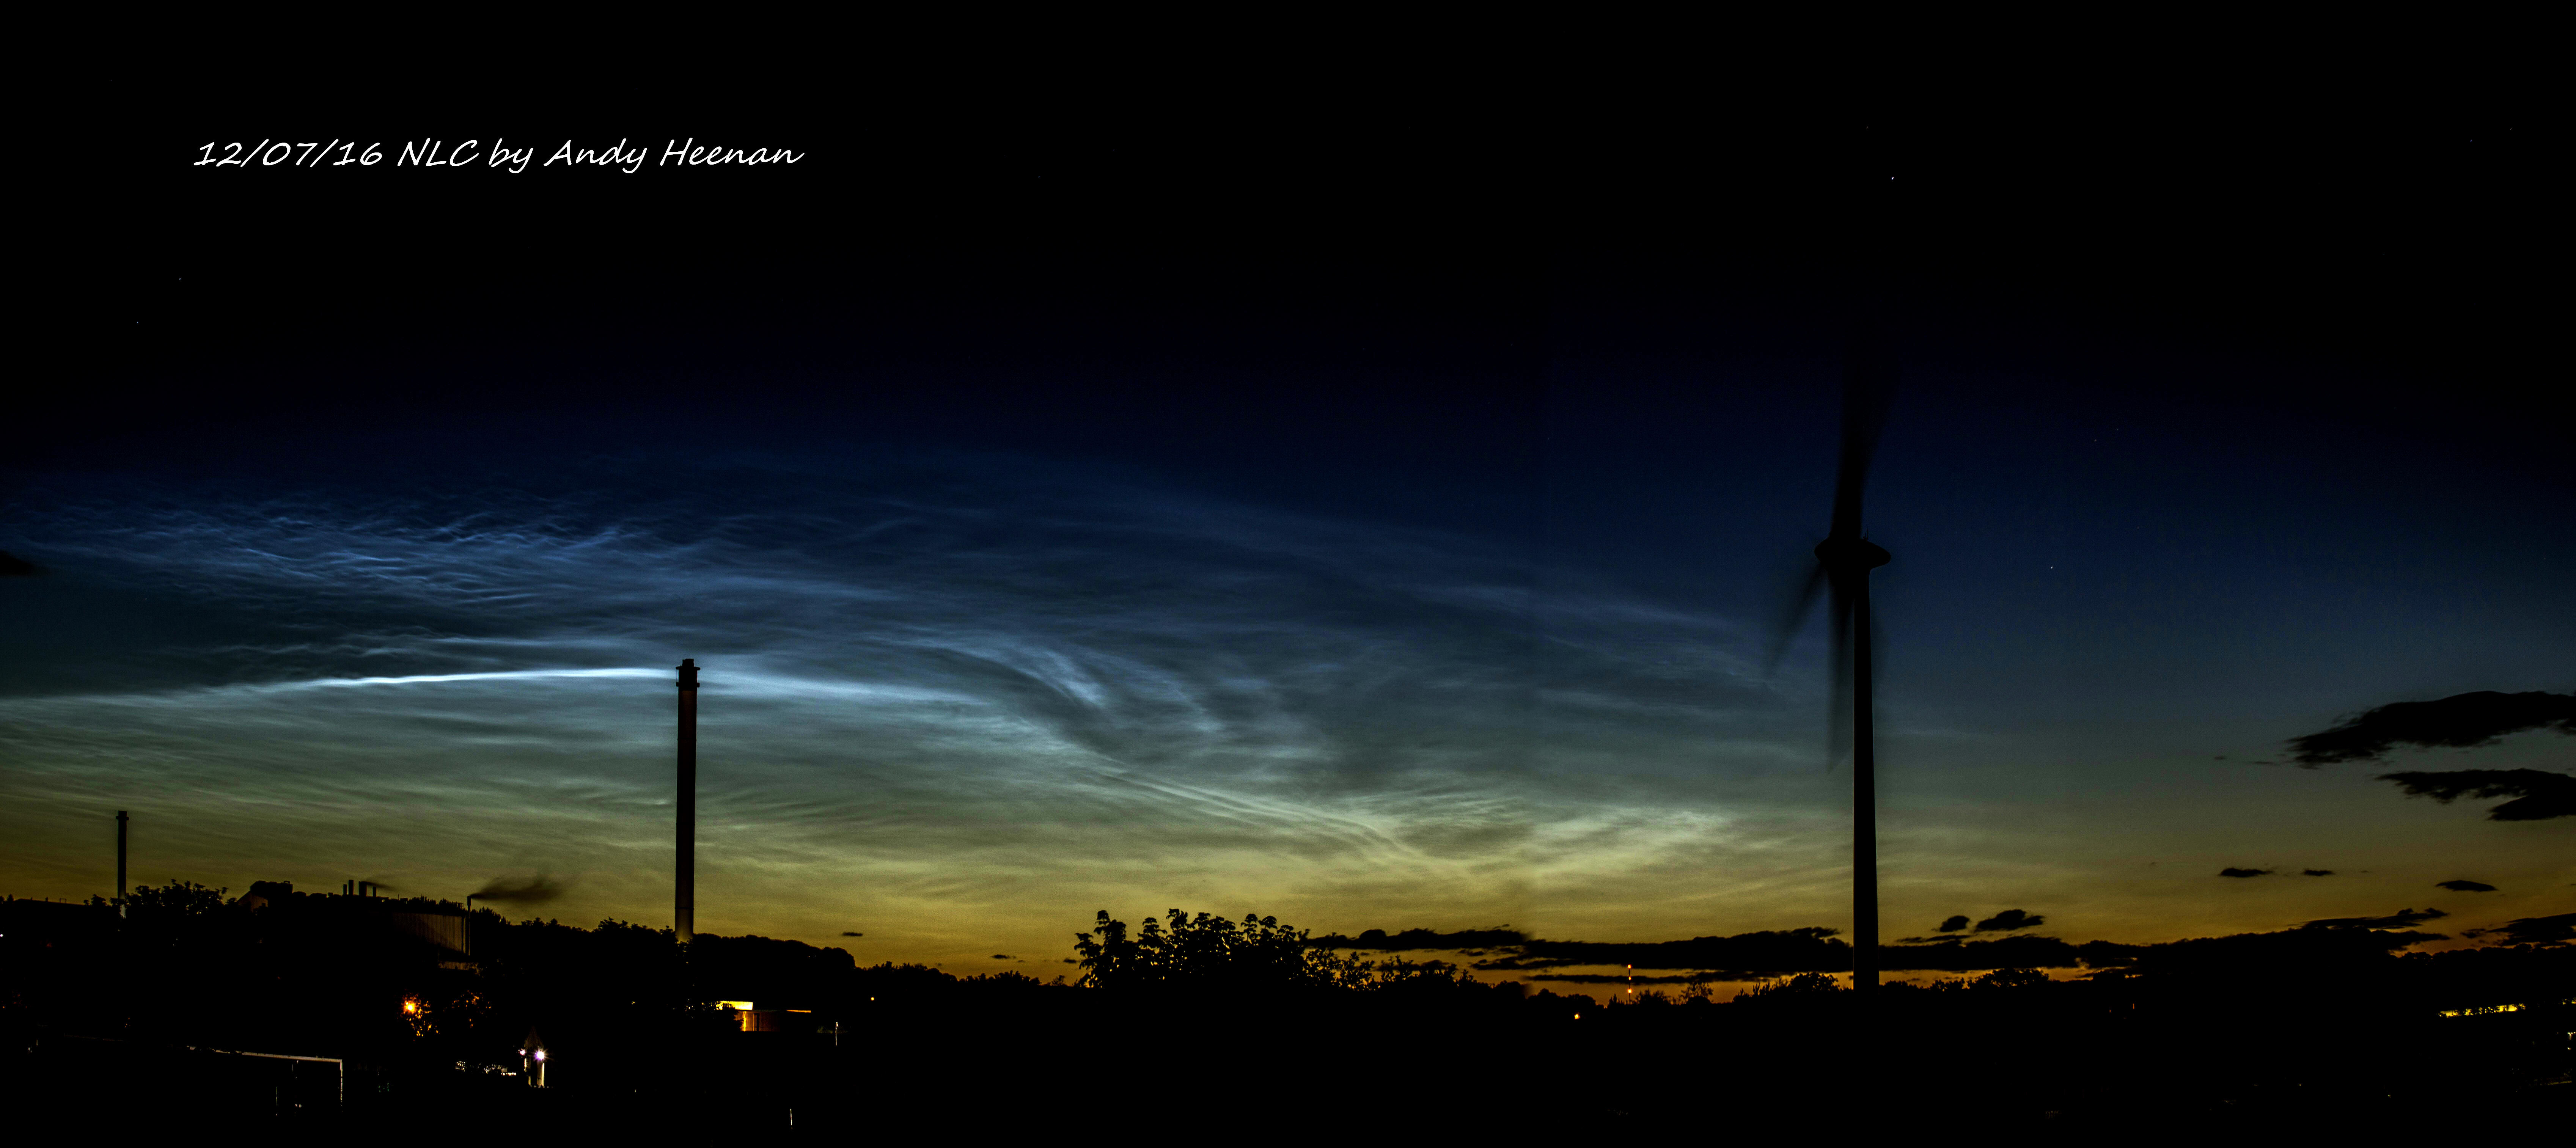 A new panoramic view of NLC by Andy Heenan taken on 12th July.